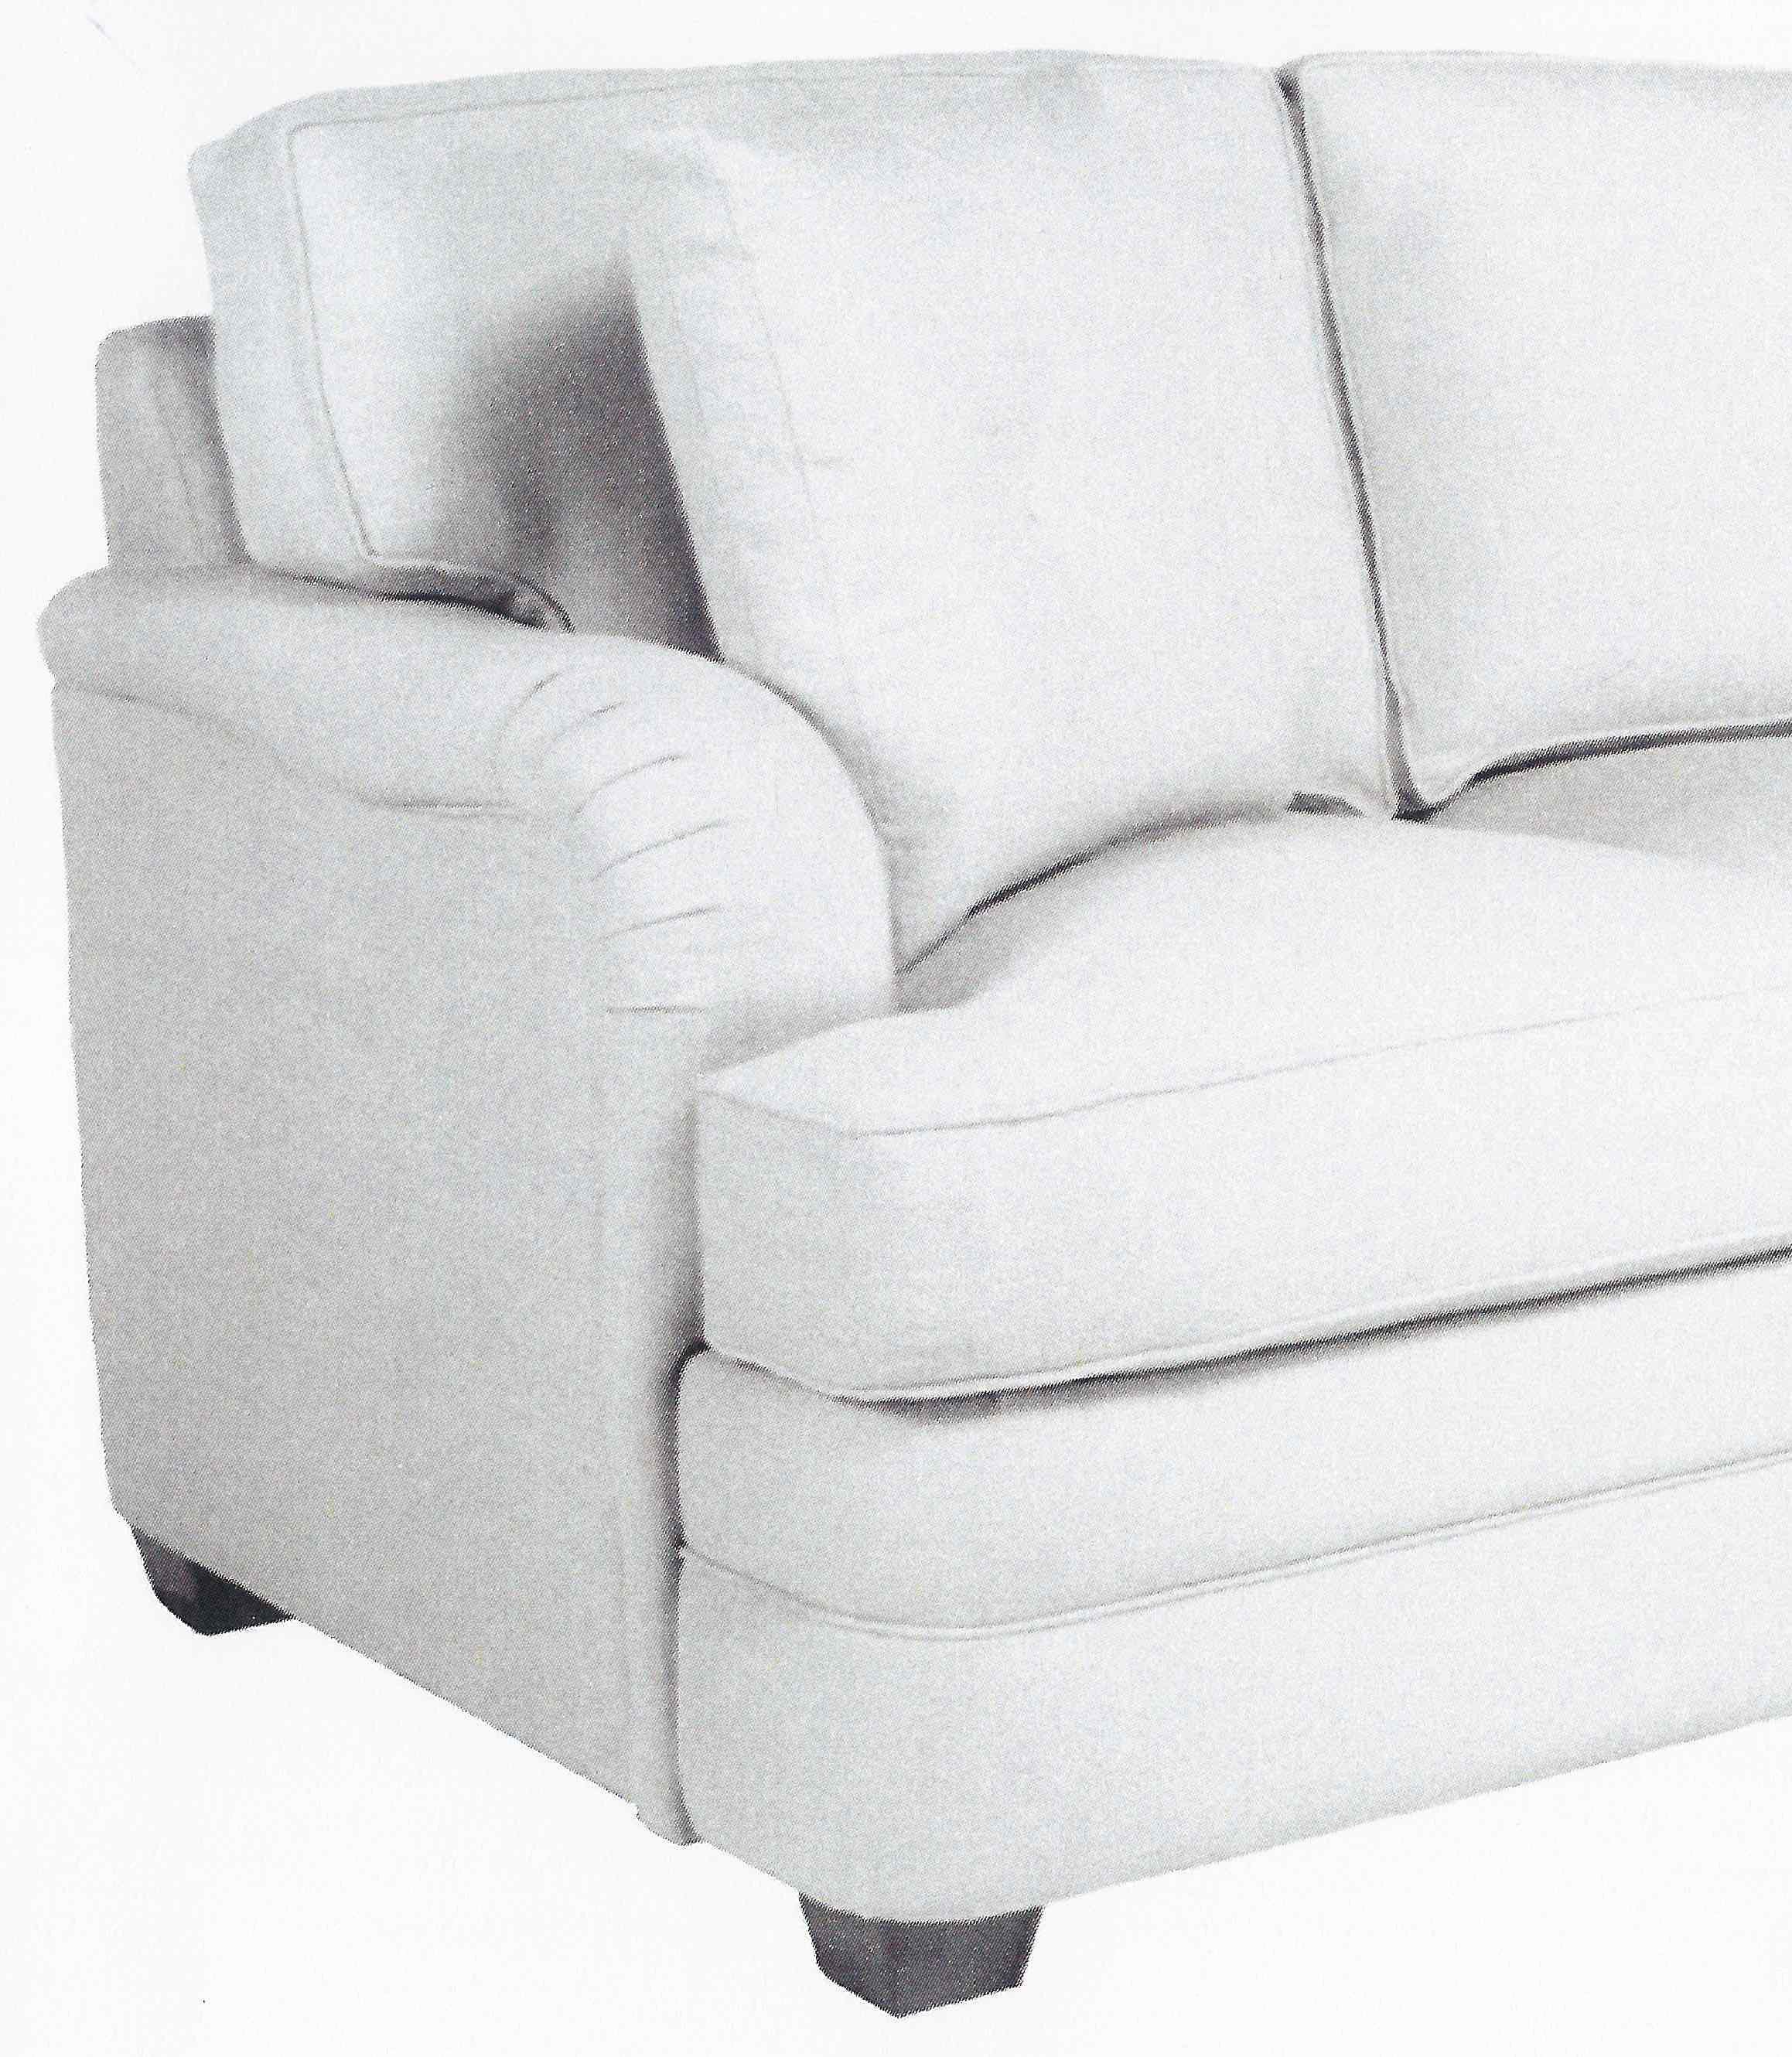 white chair slipcover t cushion for toddler fresh sofa loveseat covers pics new sofas awesome oversized